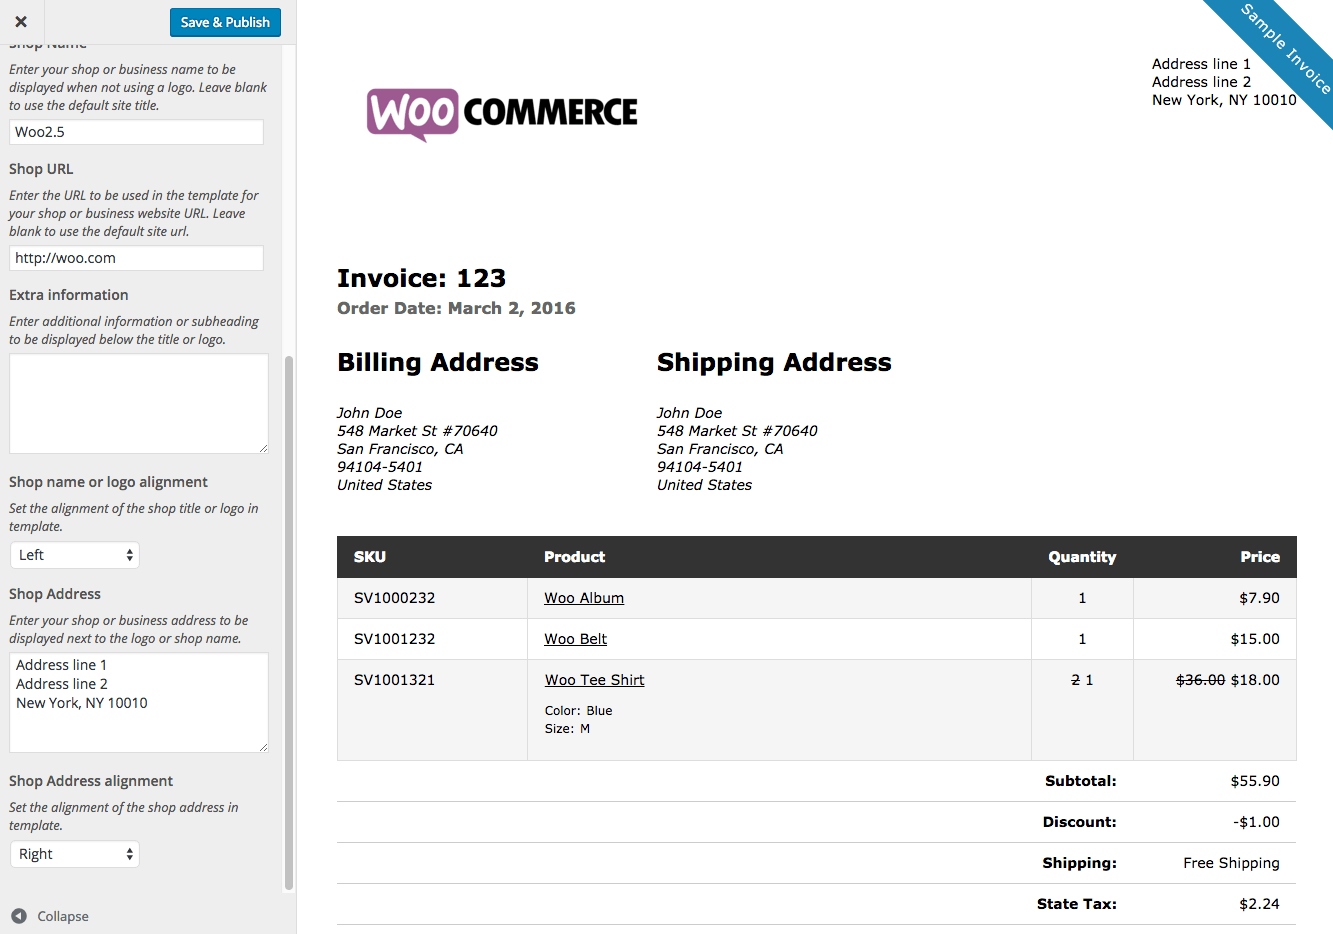 Usdgus  Scenic Print Invoices Amp Packing Lists  Woocommerce With Fair Woocommerce Print Invoices  Packing Lists Customizer With Beauteous Invoice Request Also Commercial Invoice Pdf In Addition Work Invoice Template And View And Pay Invoice As Well As Ahs Vendor Invoicing Additionally Invoice Manager From Woocommercecom With Usdgus  Fair Print Invoices Amp Packing Lists  Woocommerce With Beauteous Woocommerce Print Invoices  Packing Lists Customizer And Scenic Invoice Request Also Commercial Invoice Pdf In Addition Work Invoice Template From Woocommercecom